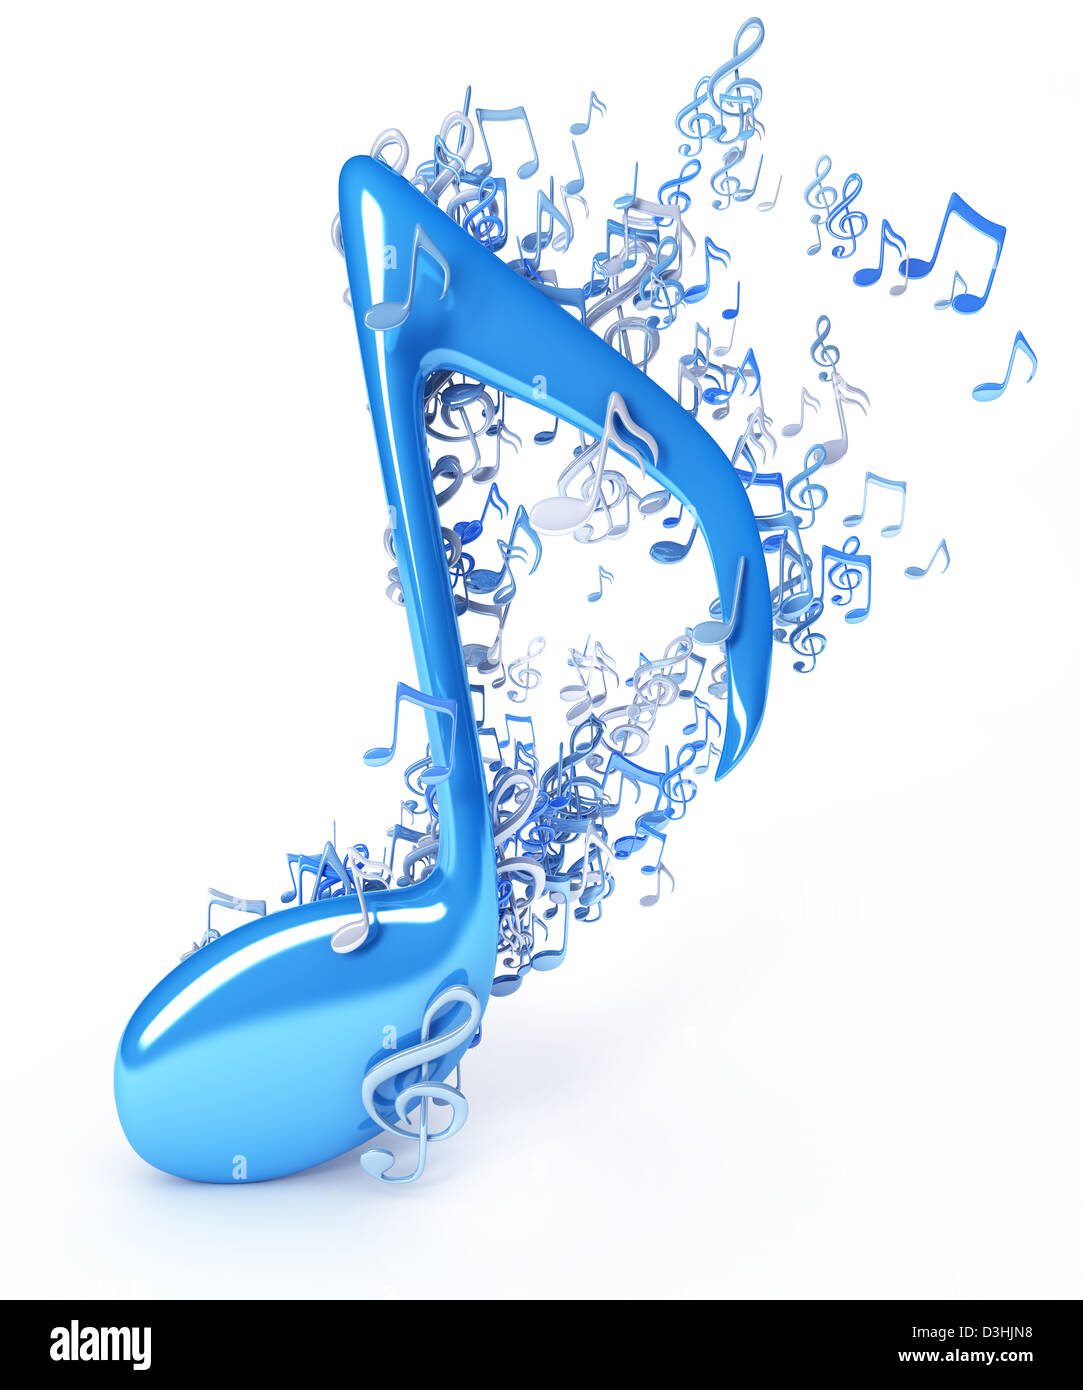 Music notes - Stock Image